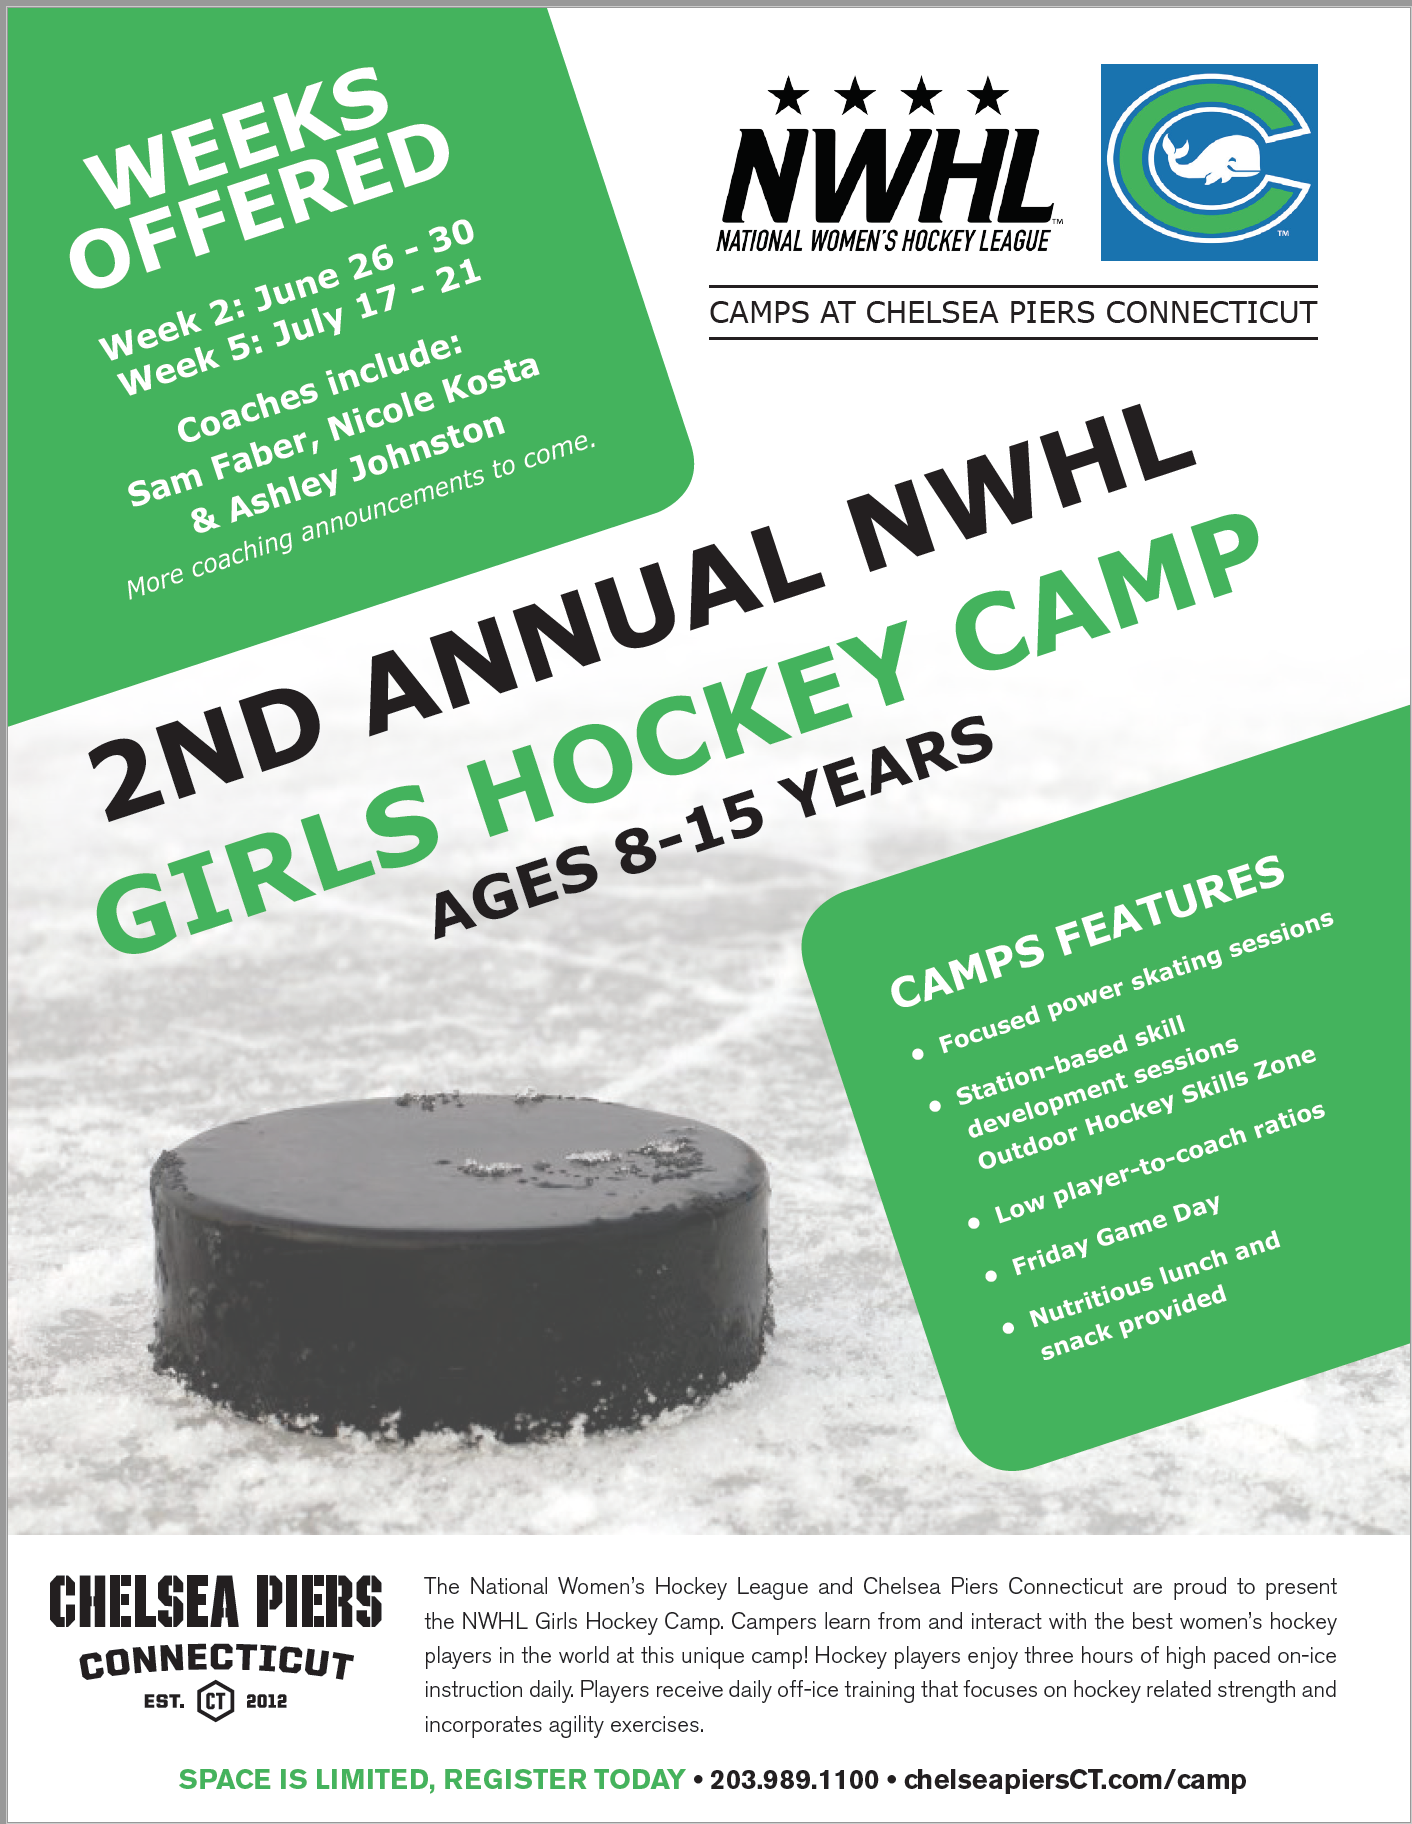 nwhl ct whale summer camp connecticut girls hockey league inc